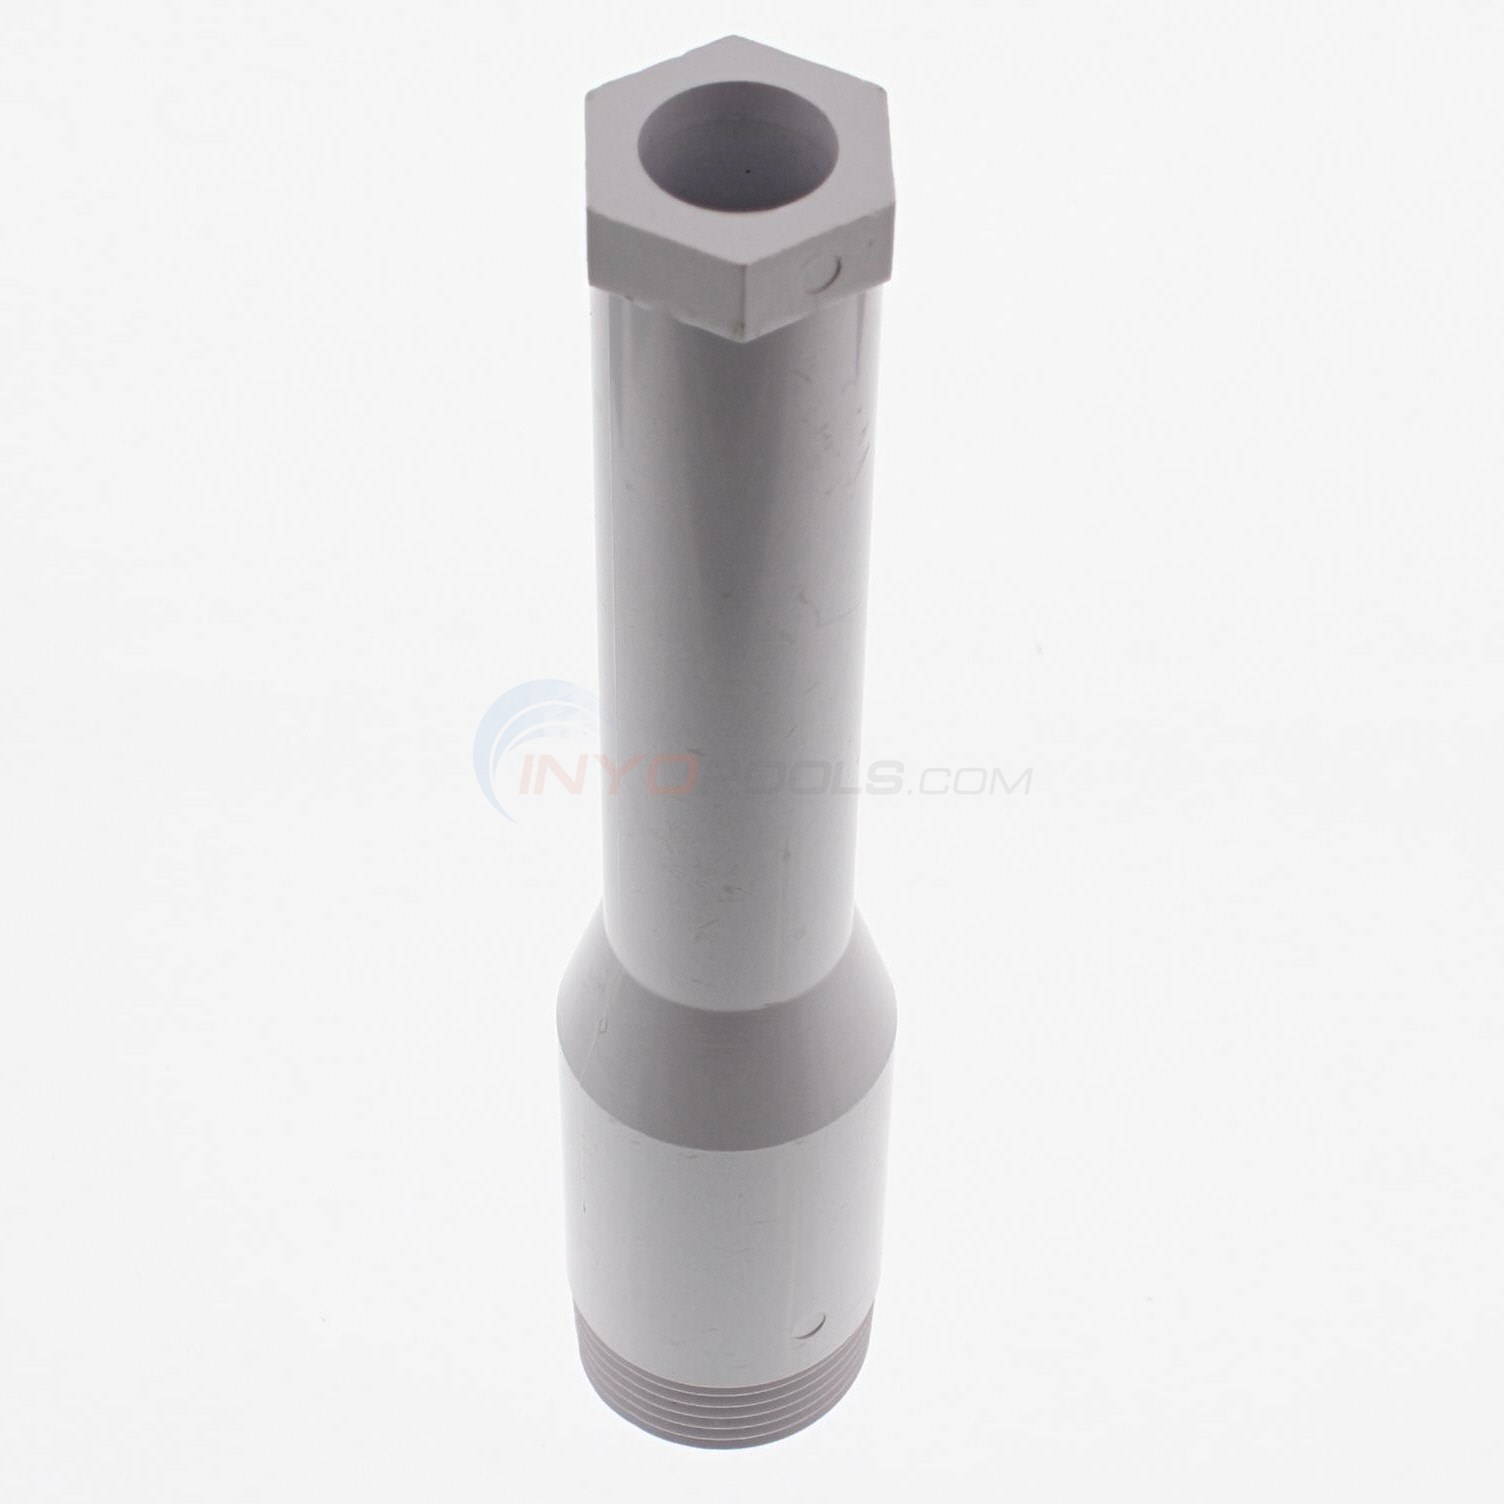 Pentair 1/2 in. Mixing Nozzle - 46543100